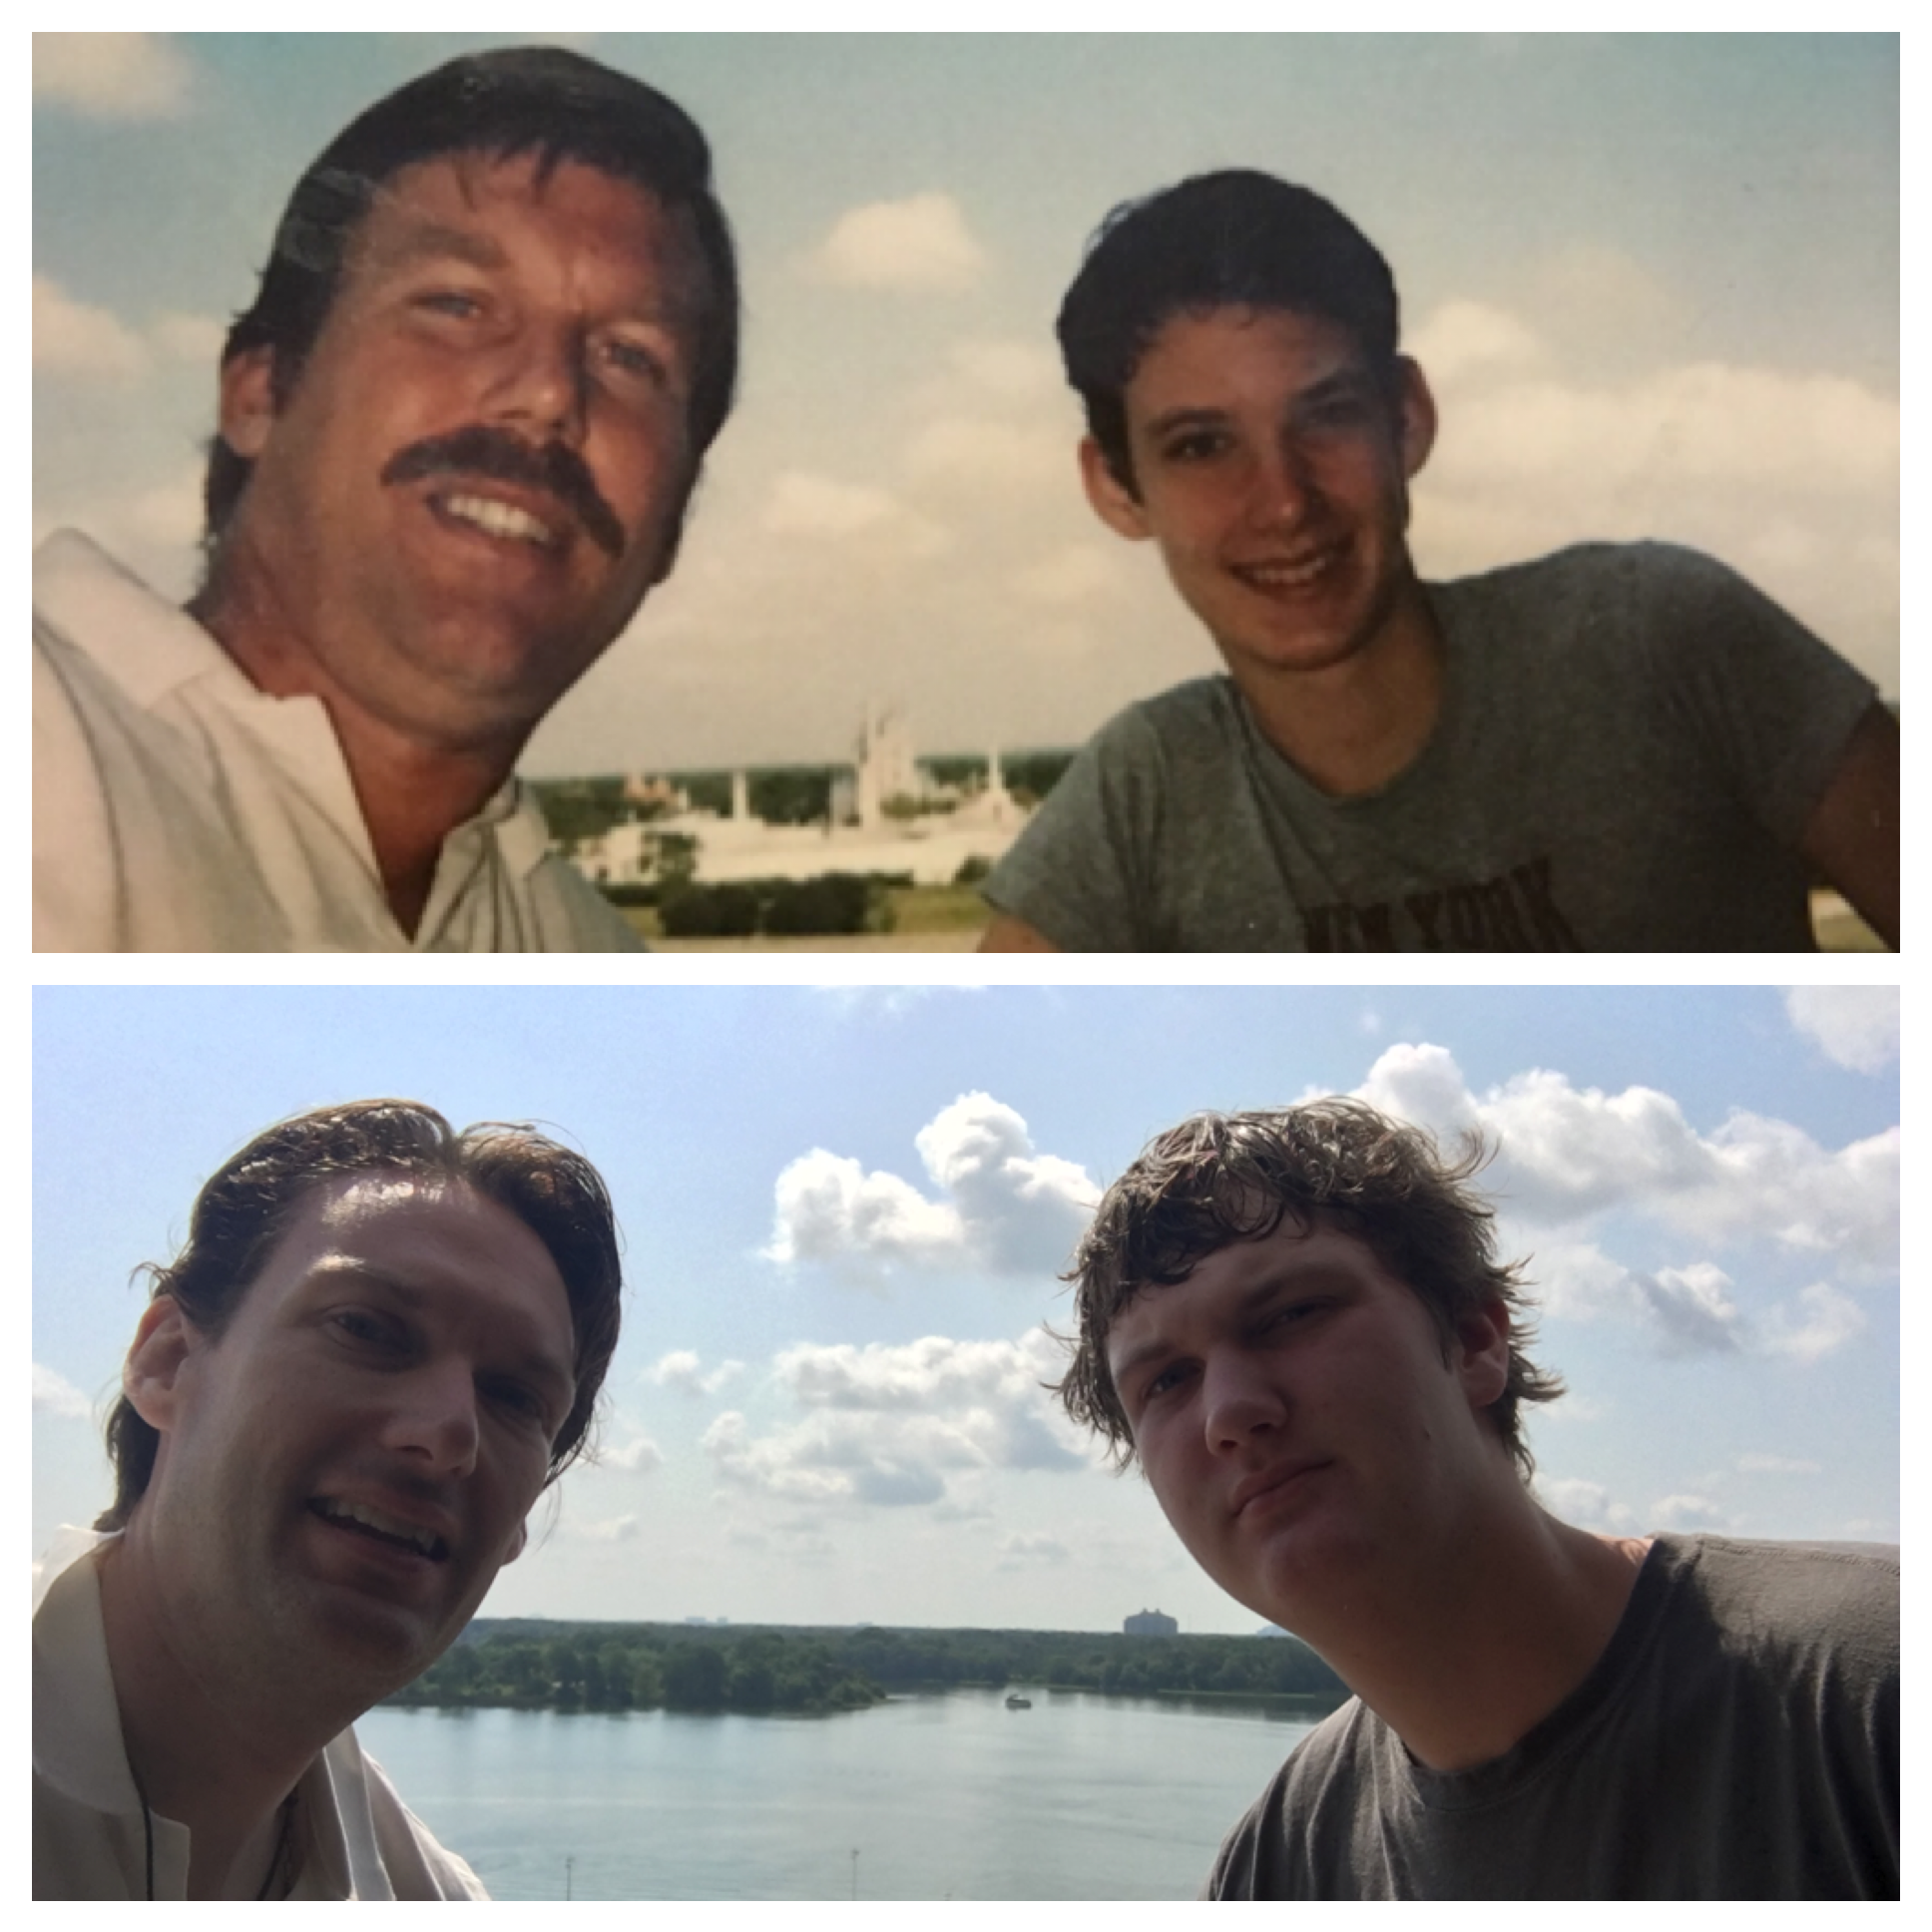 Top: Dad and me at the Contemporary Hotel. Bottom, my son and me at the Contemporary Hotel.